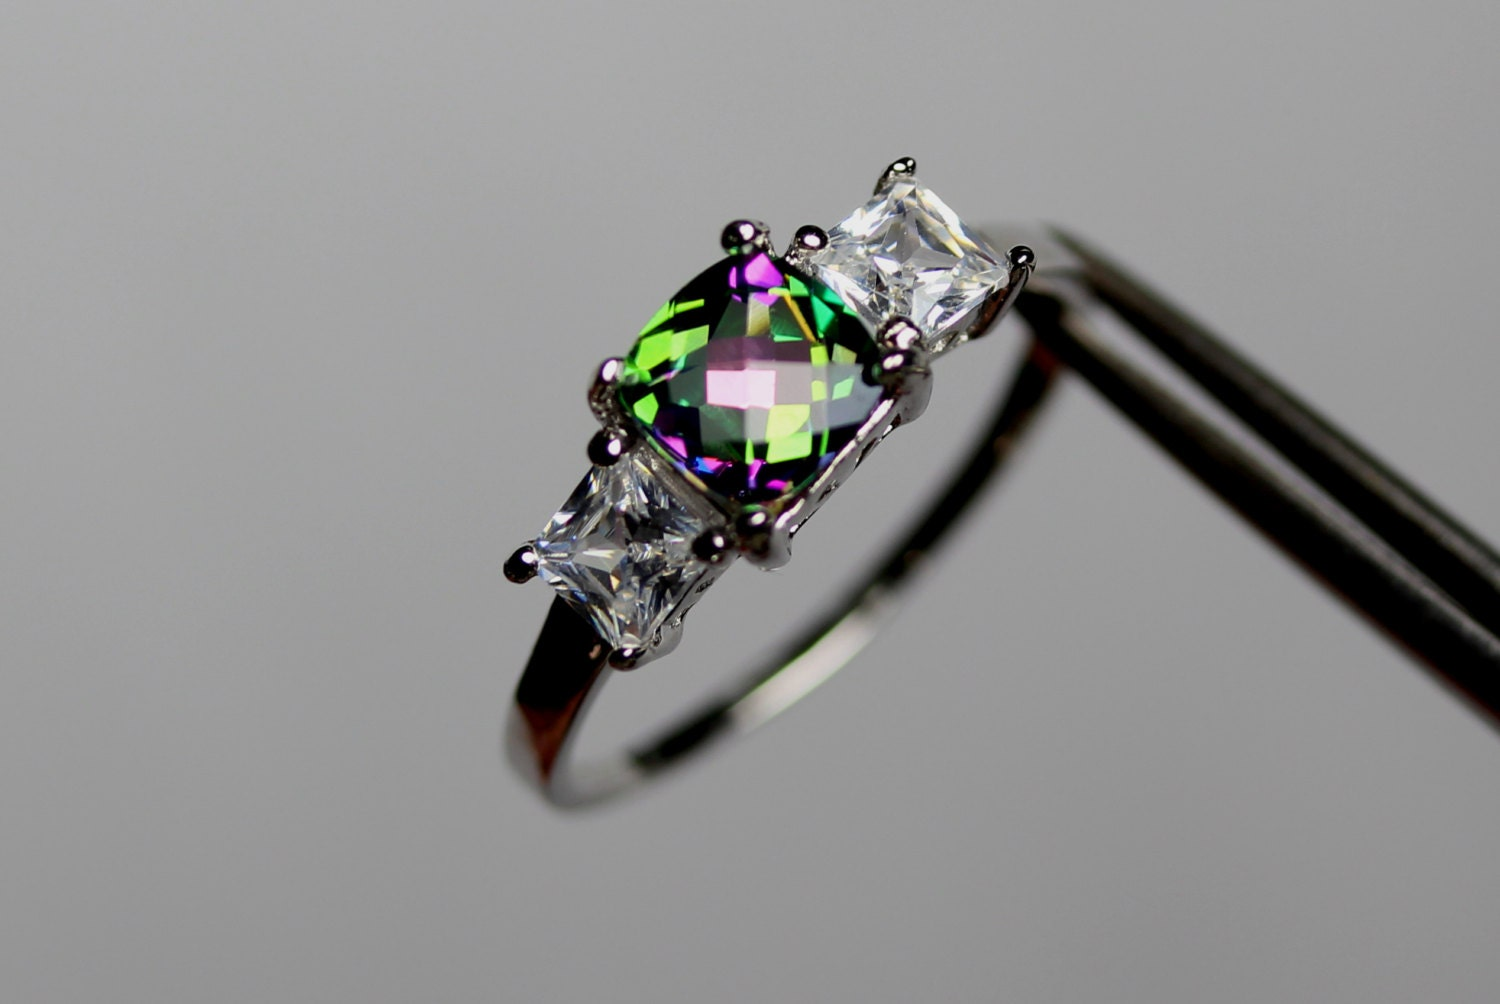 k mystic image star jewelry rings ring topaz rainbow emerald cut main